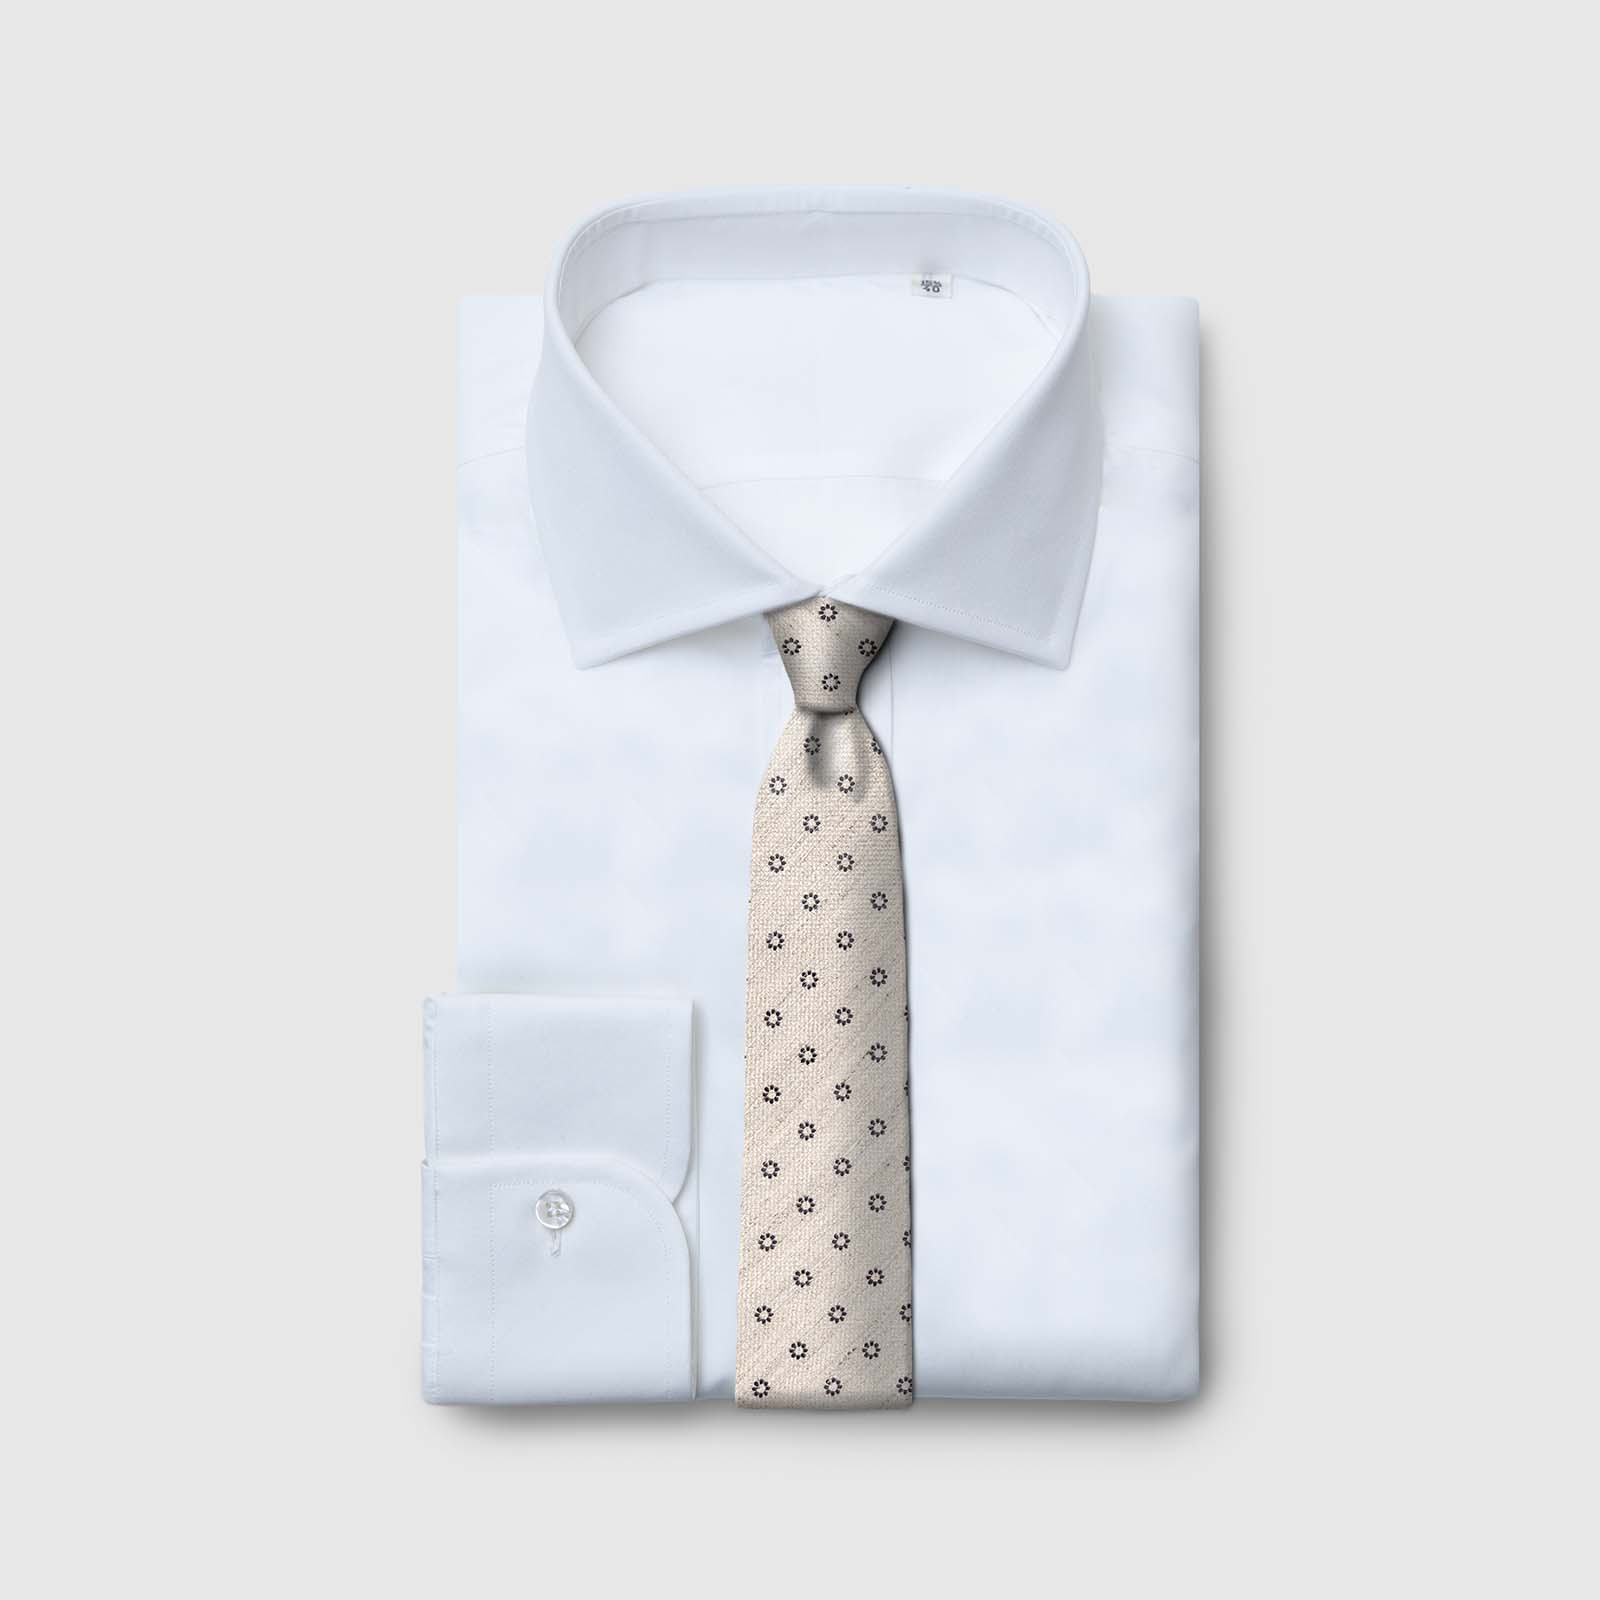 5 Fold beige tie with blue dots